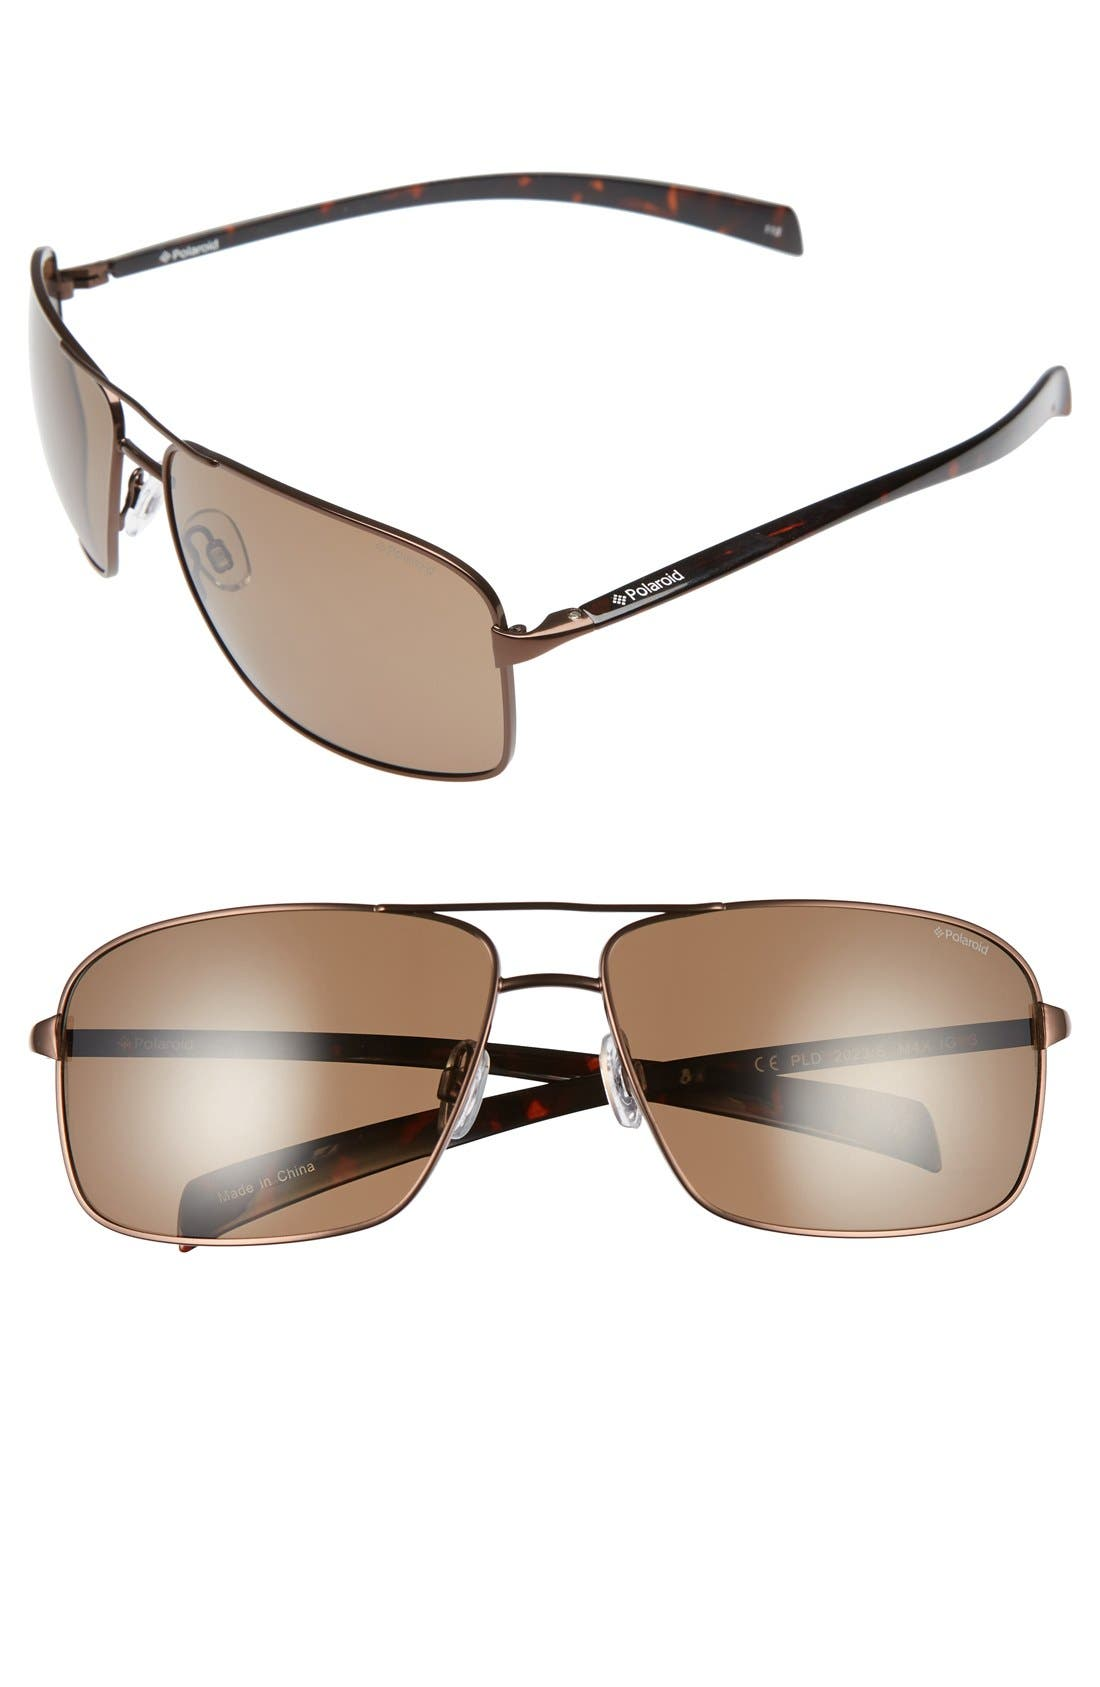 POLAROID EYEWEAR 64mm Polarized Aviator Sunglasses